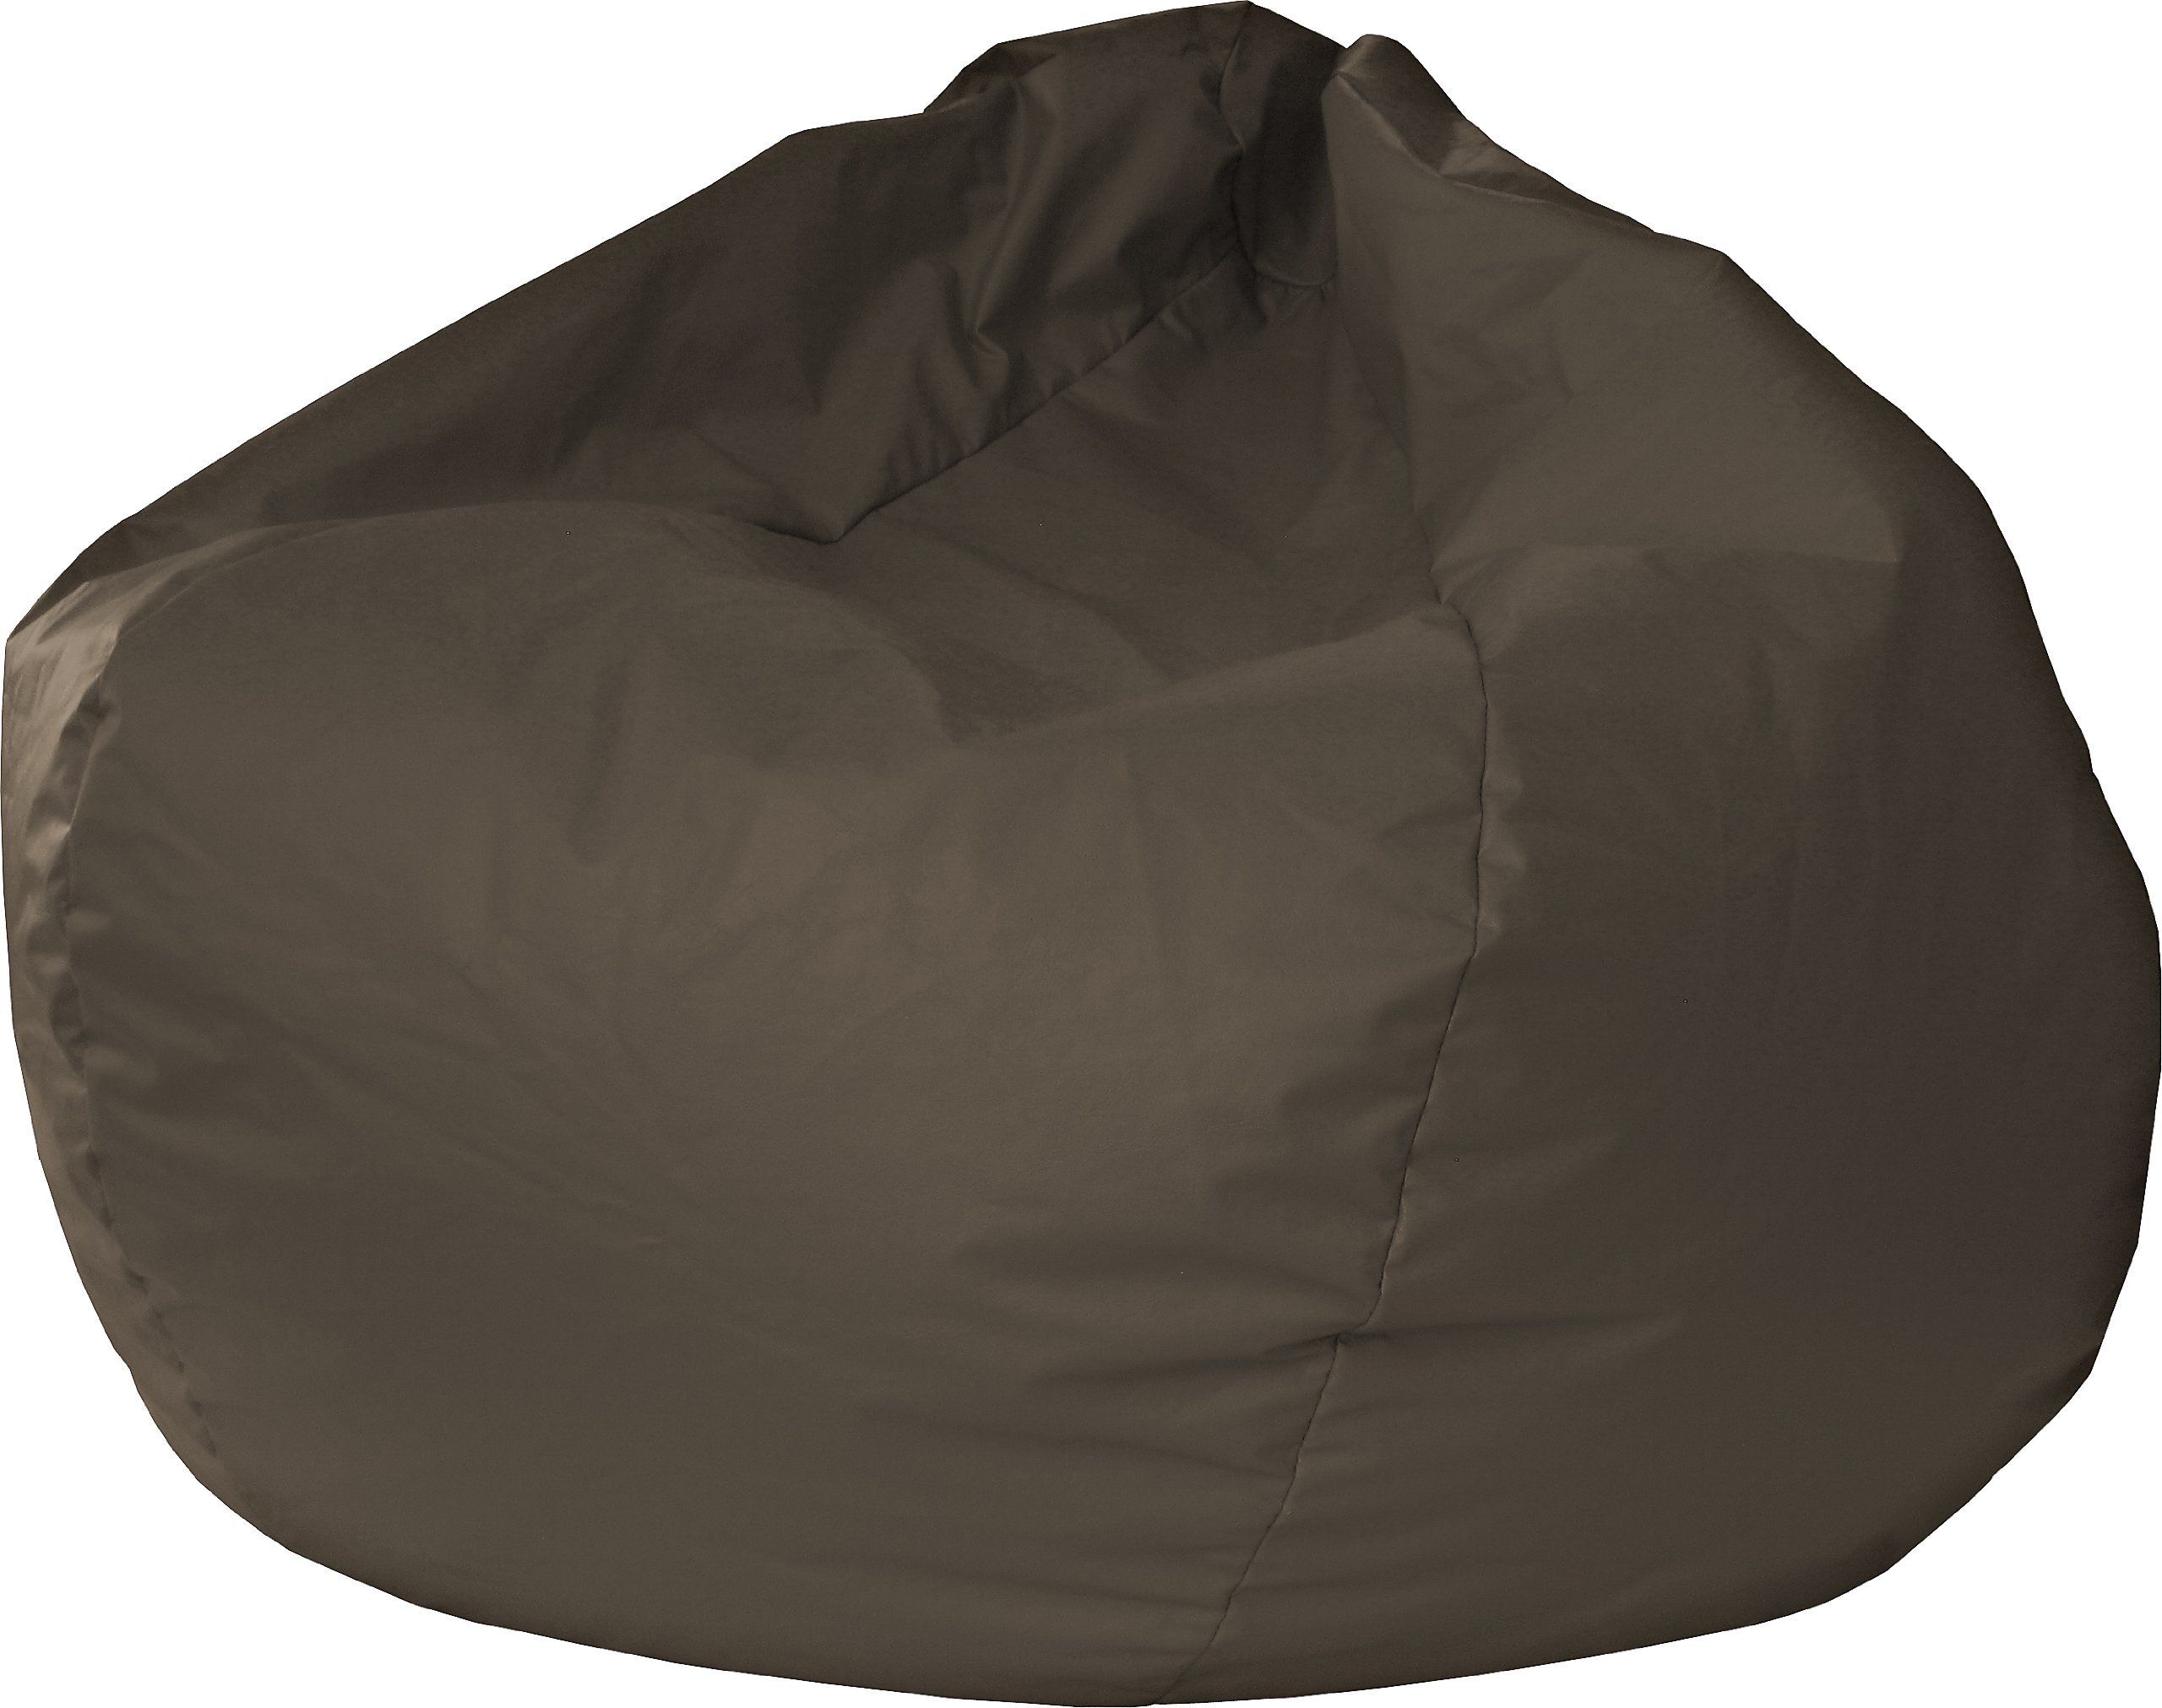 Gold Medal Bean Bags 30008446821 Small Leather Look Bean Bag for Children, Walnut by Gold Medal Bean Bags